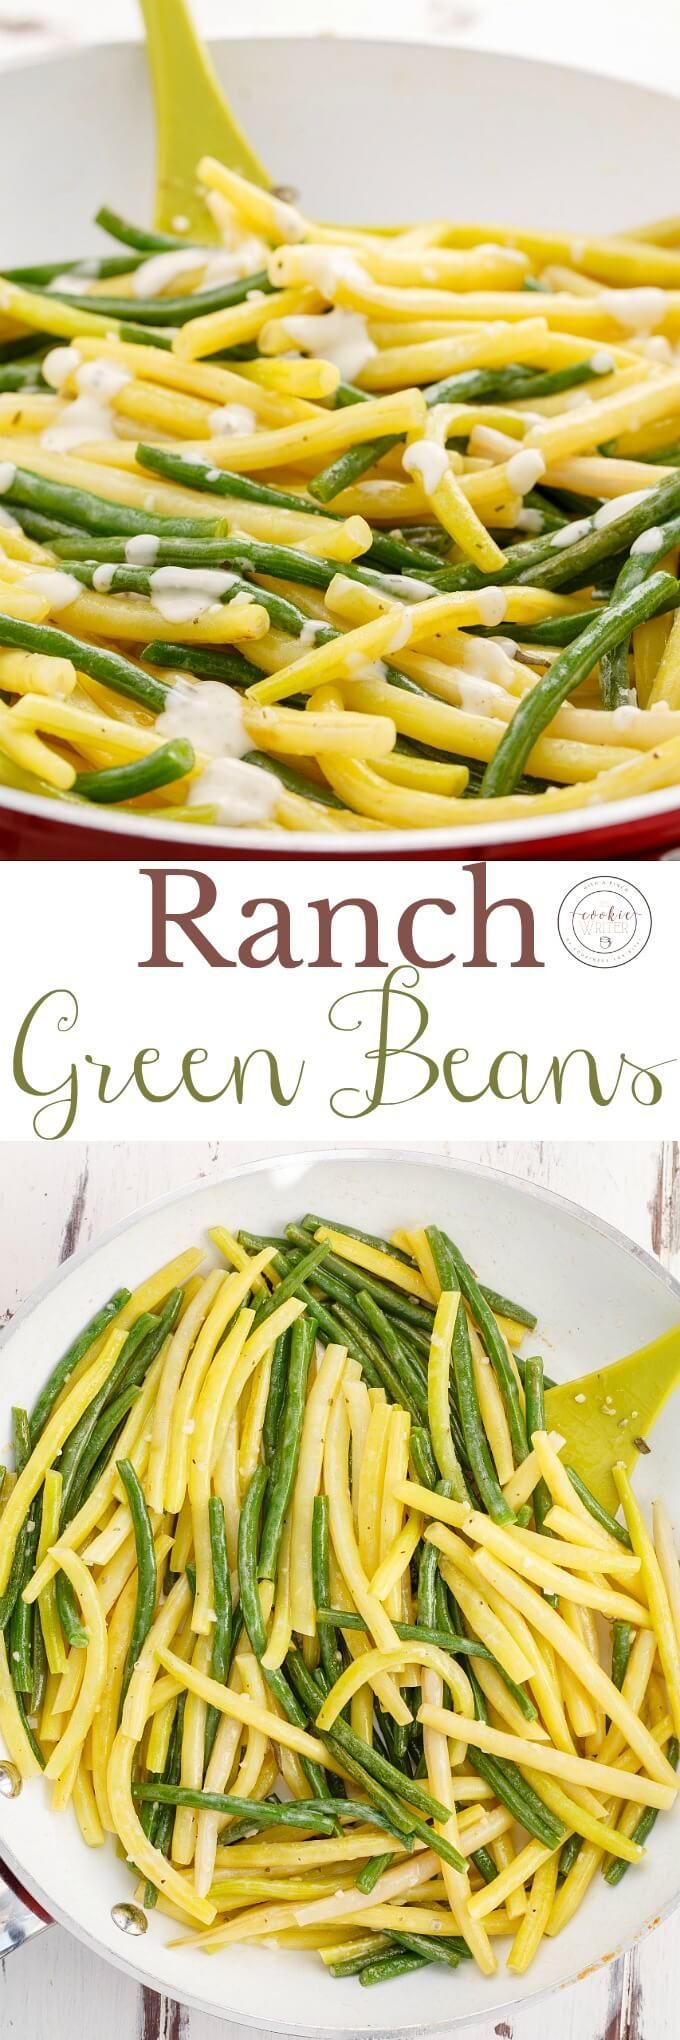 Ranch Green Beans | http://thecookiewriter.com | @thecookiewriter | #stringbeans | The easiest side dish for Thanksgiving, Christmas, or Easter! No bacon here, but turkey bacon would make a great addition. A great way to get your veggies in all the while using ranch dressing :) Gluten-free and vegetarian friendly!